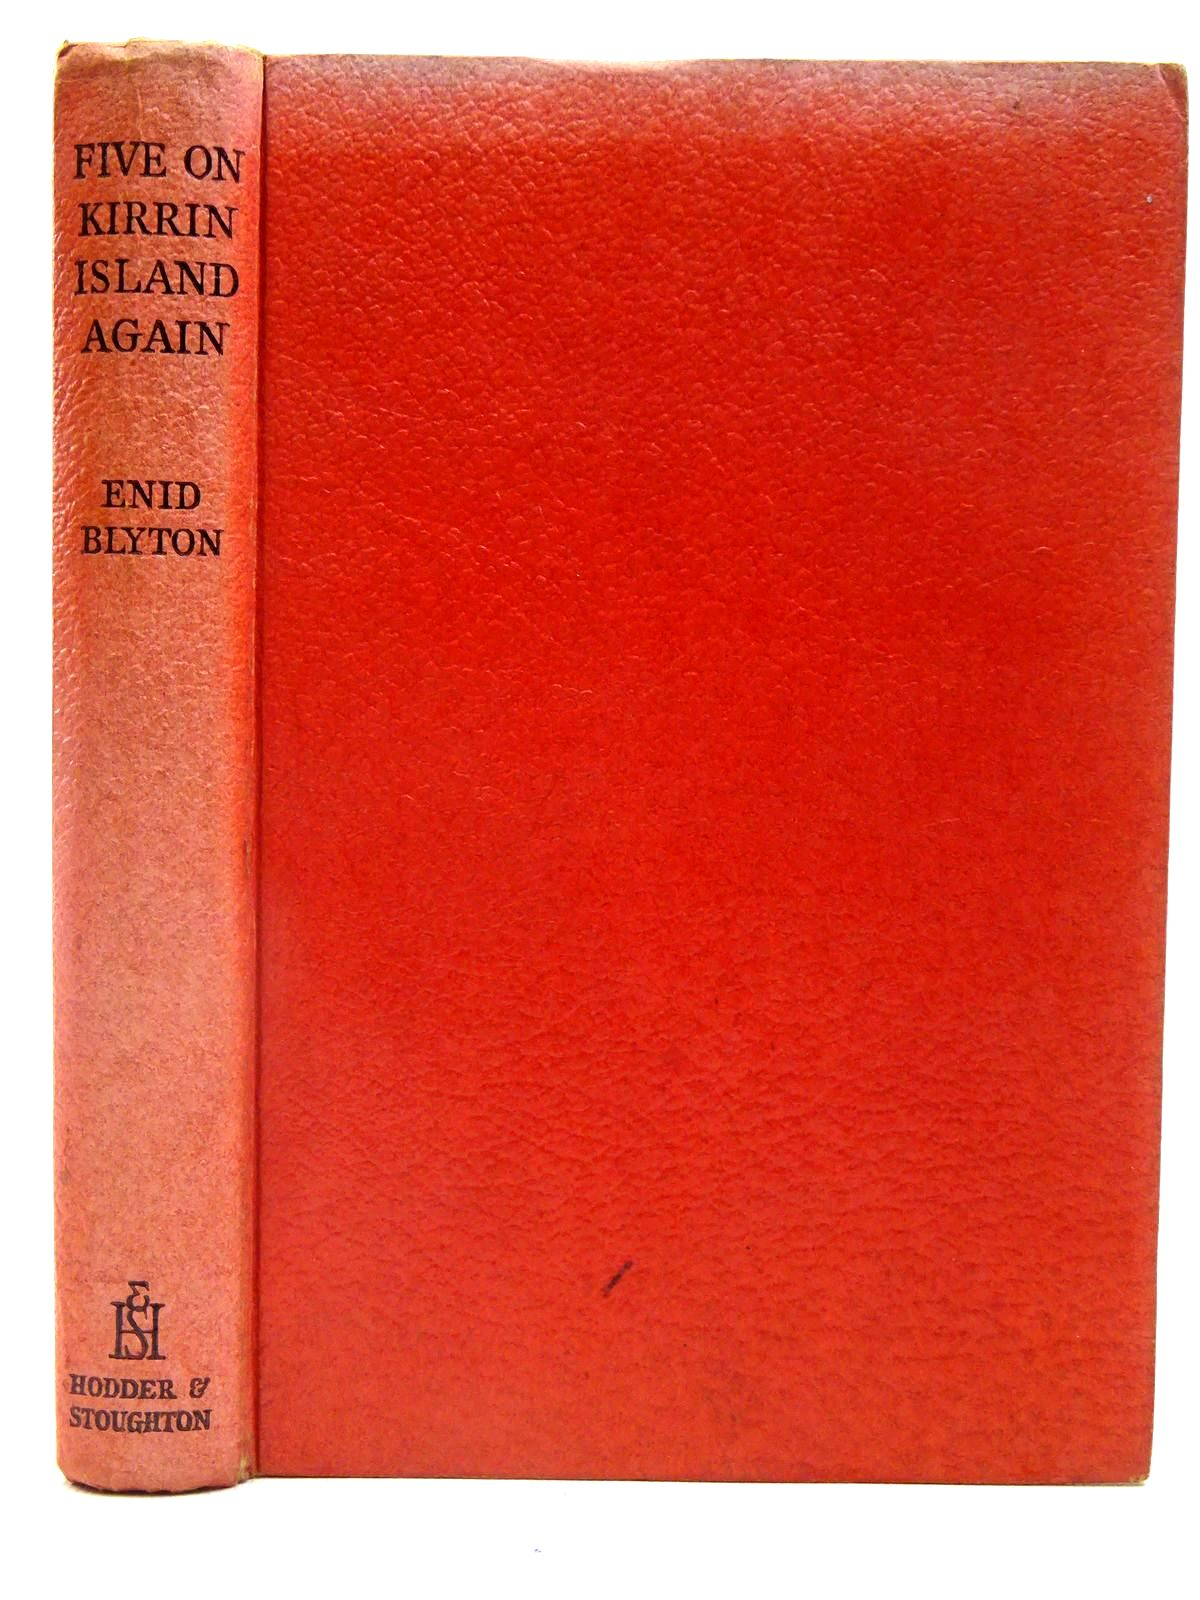 Photo of FIVE ON KIRRIN ISLAND AGAIN written by Blyton, Enid published by Hodder & Stoughton (STOCK CODE: 2128069)  for sale by Stella & Rose's Books